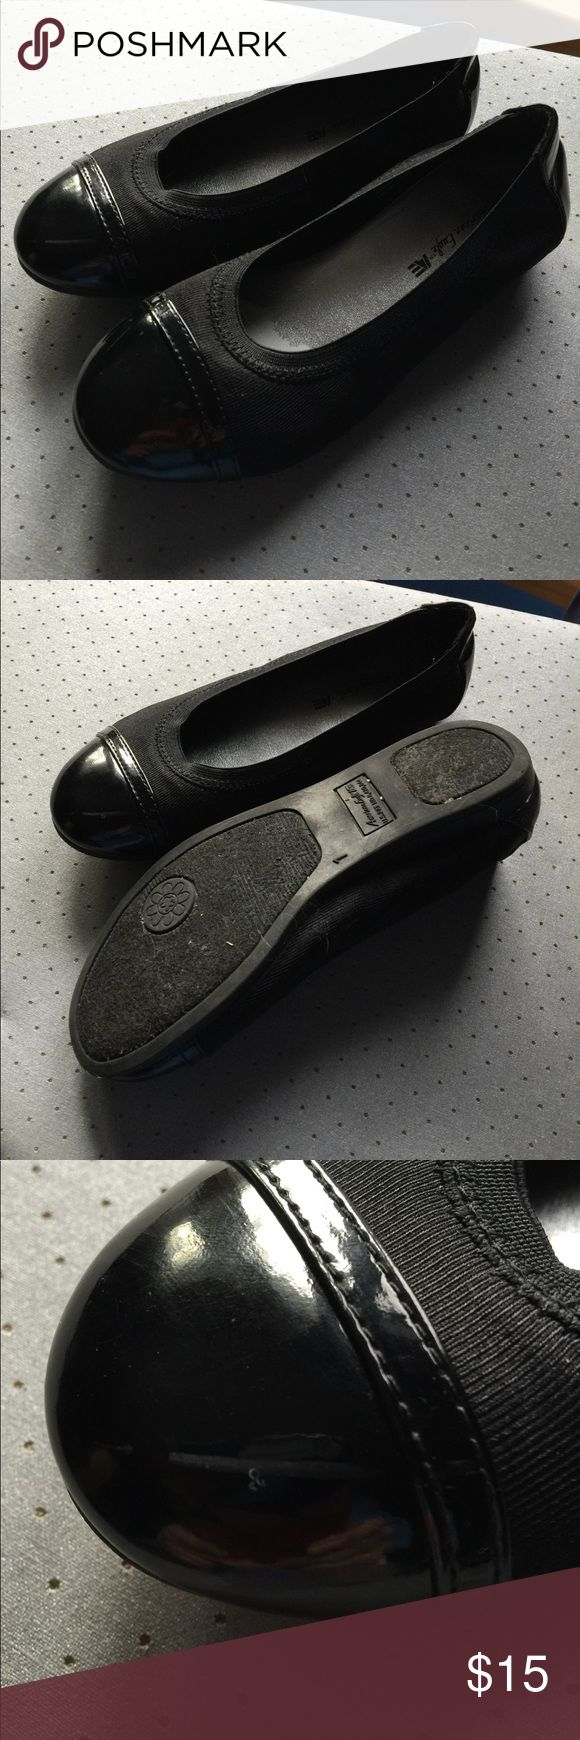 Girls black dress shoes Size 1 girls dress shoes. Patten leather toe. Perfectly paired with a holiday dress from my closet. Right shoe has a scuff on the toe which can be easily buffed out with polish. American Eagle By Payless Shoes Dress Shoes